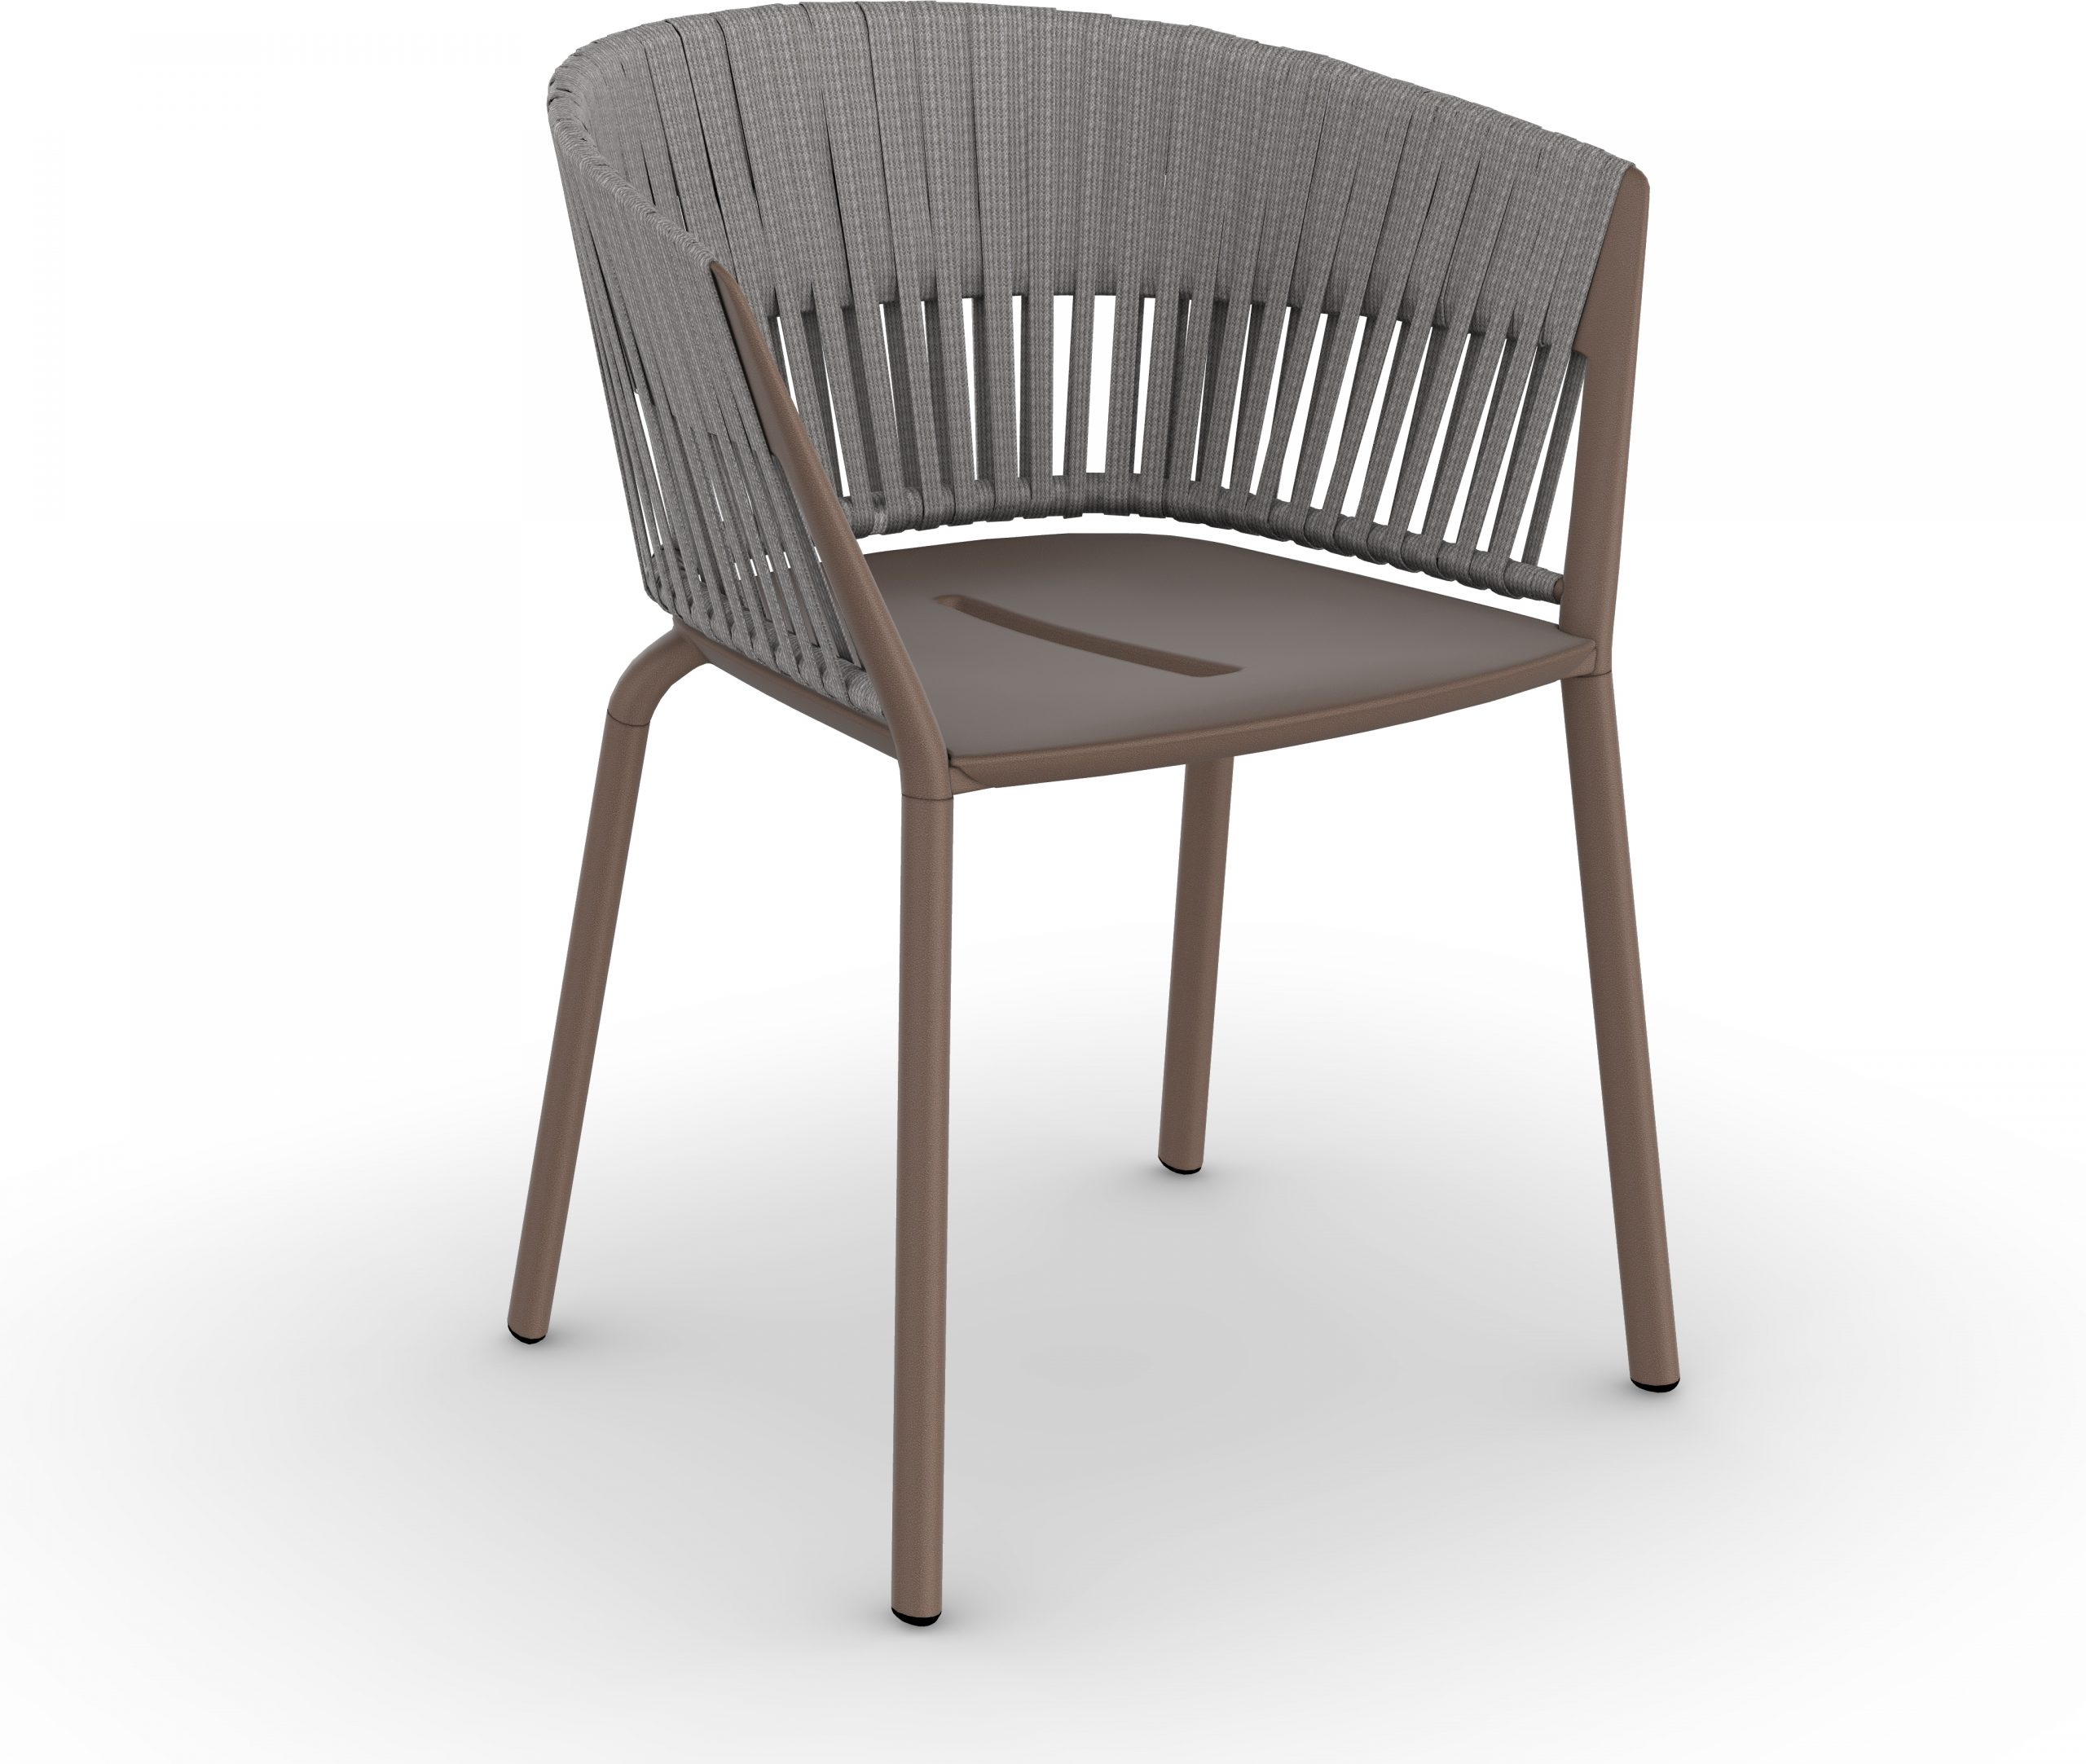 Ria Armchair with Rope